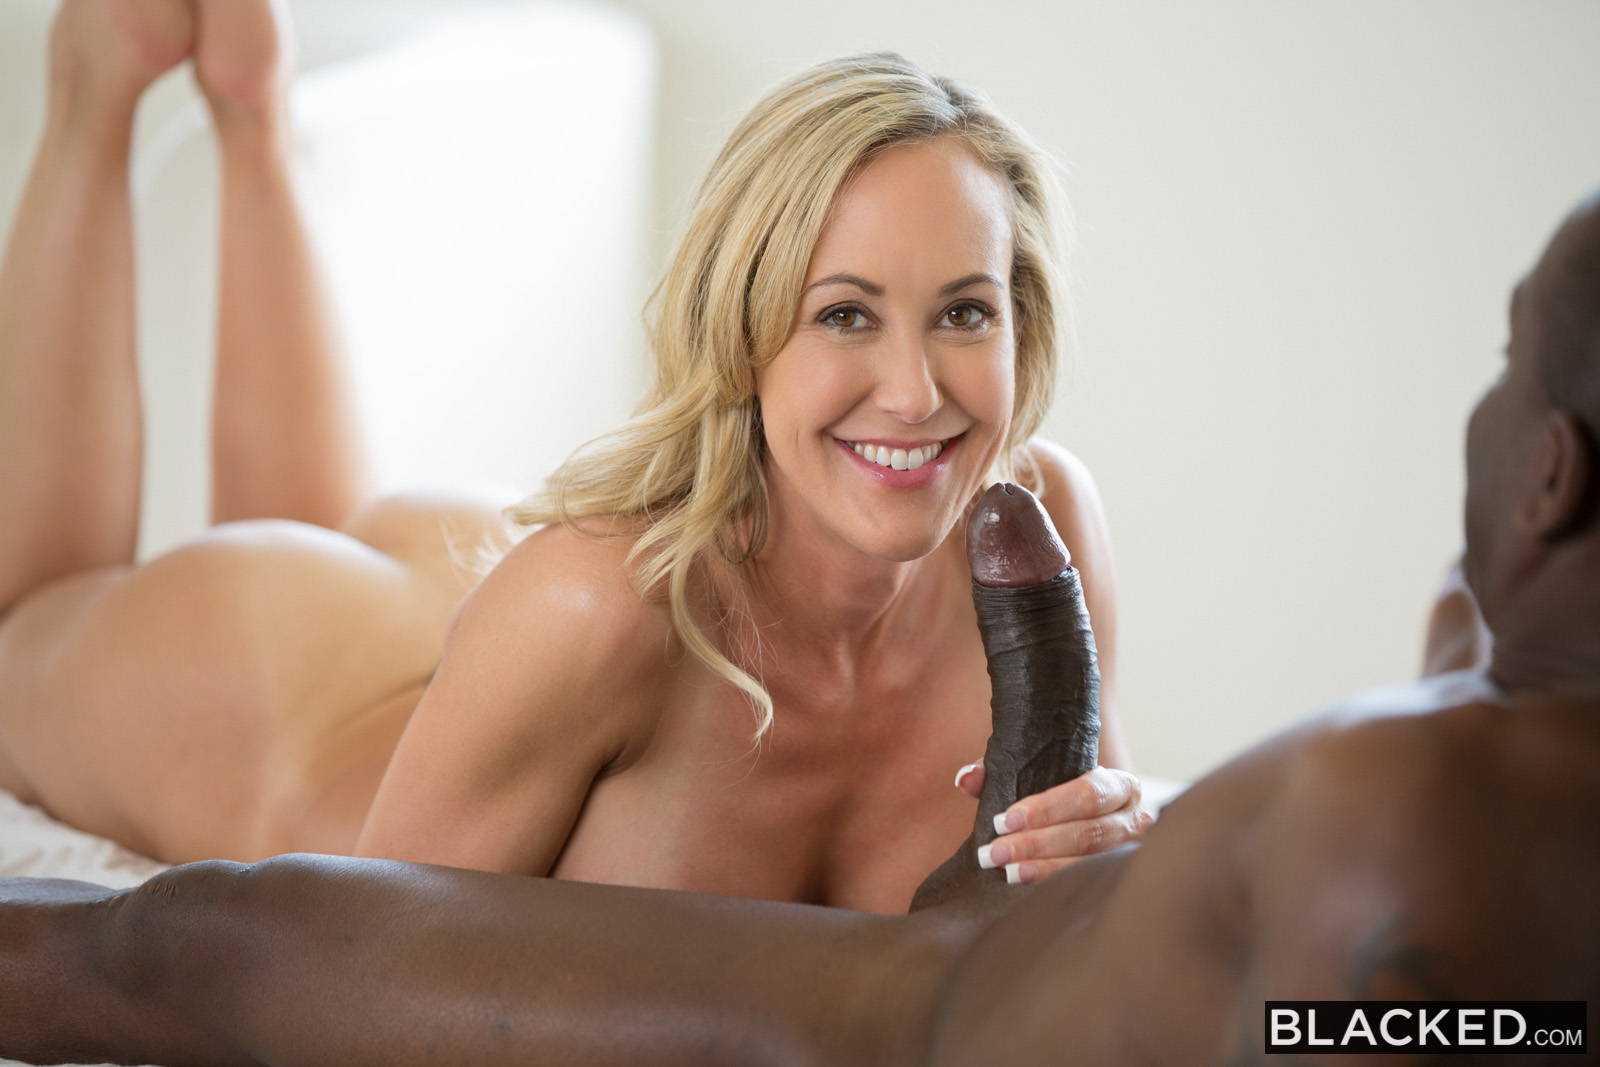 Riley nixon sucks black cock for money gloryhole